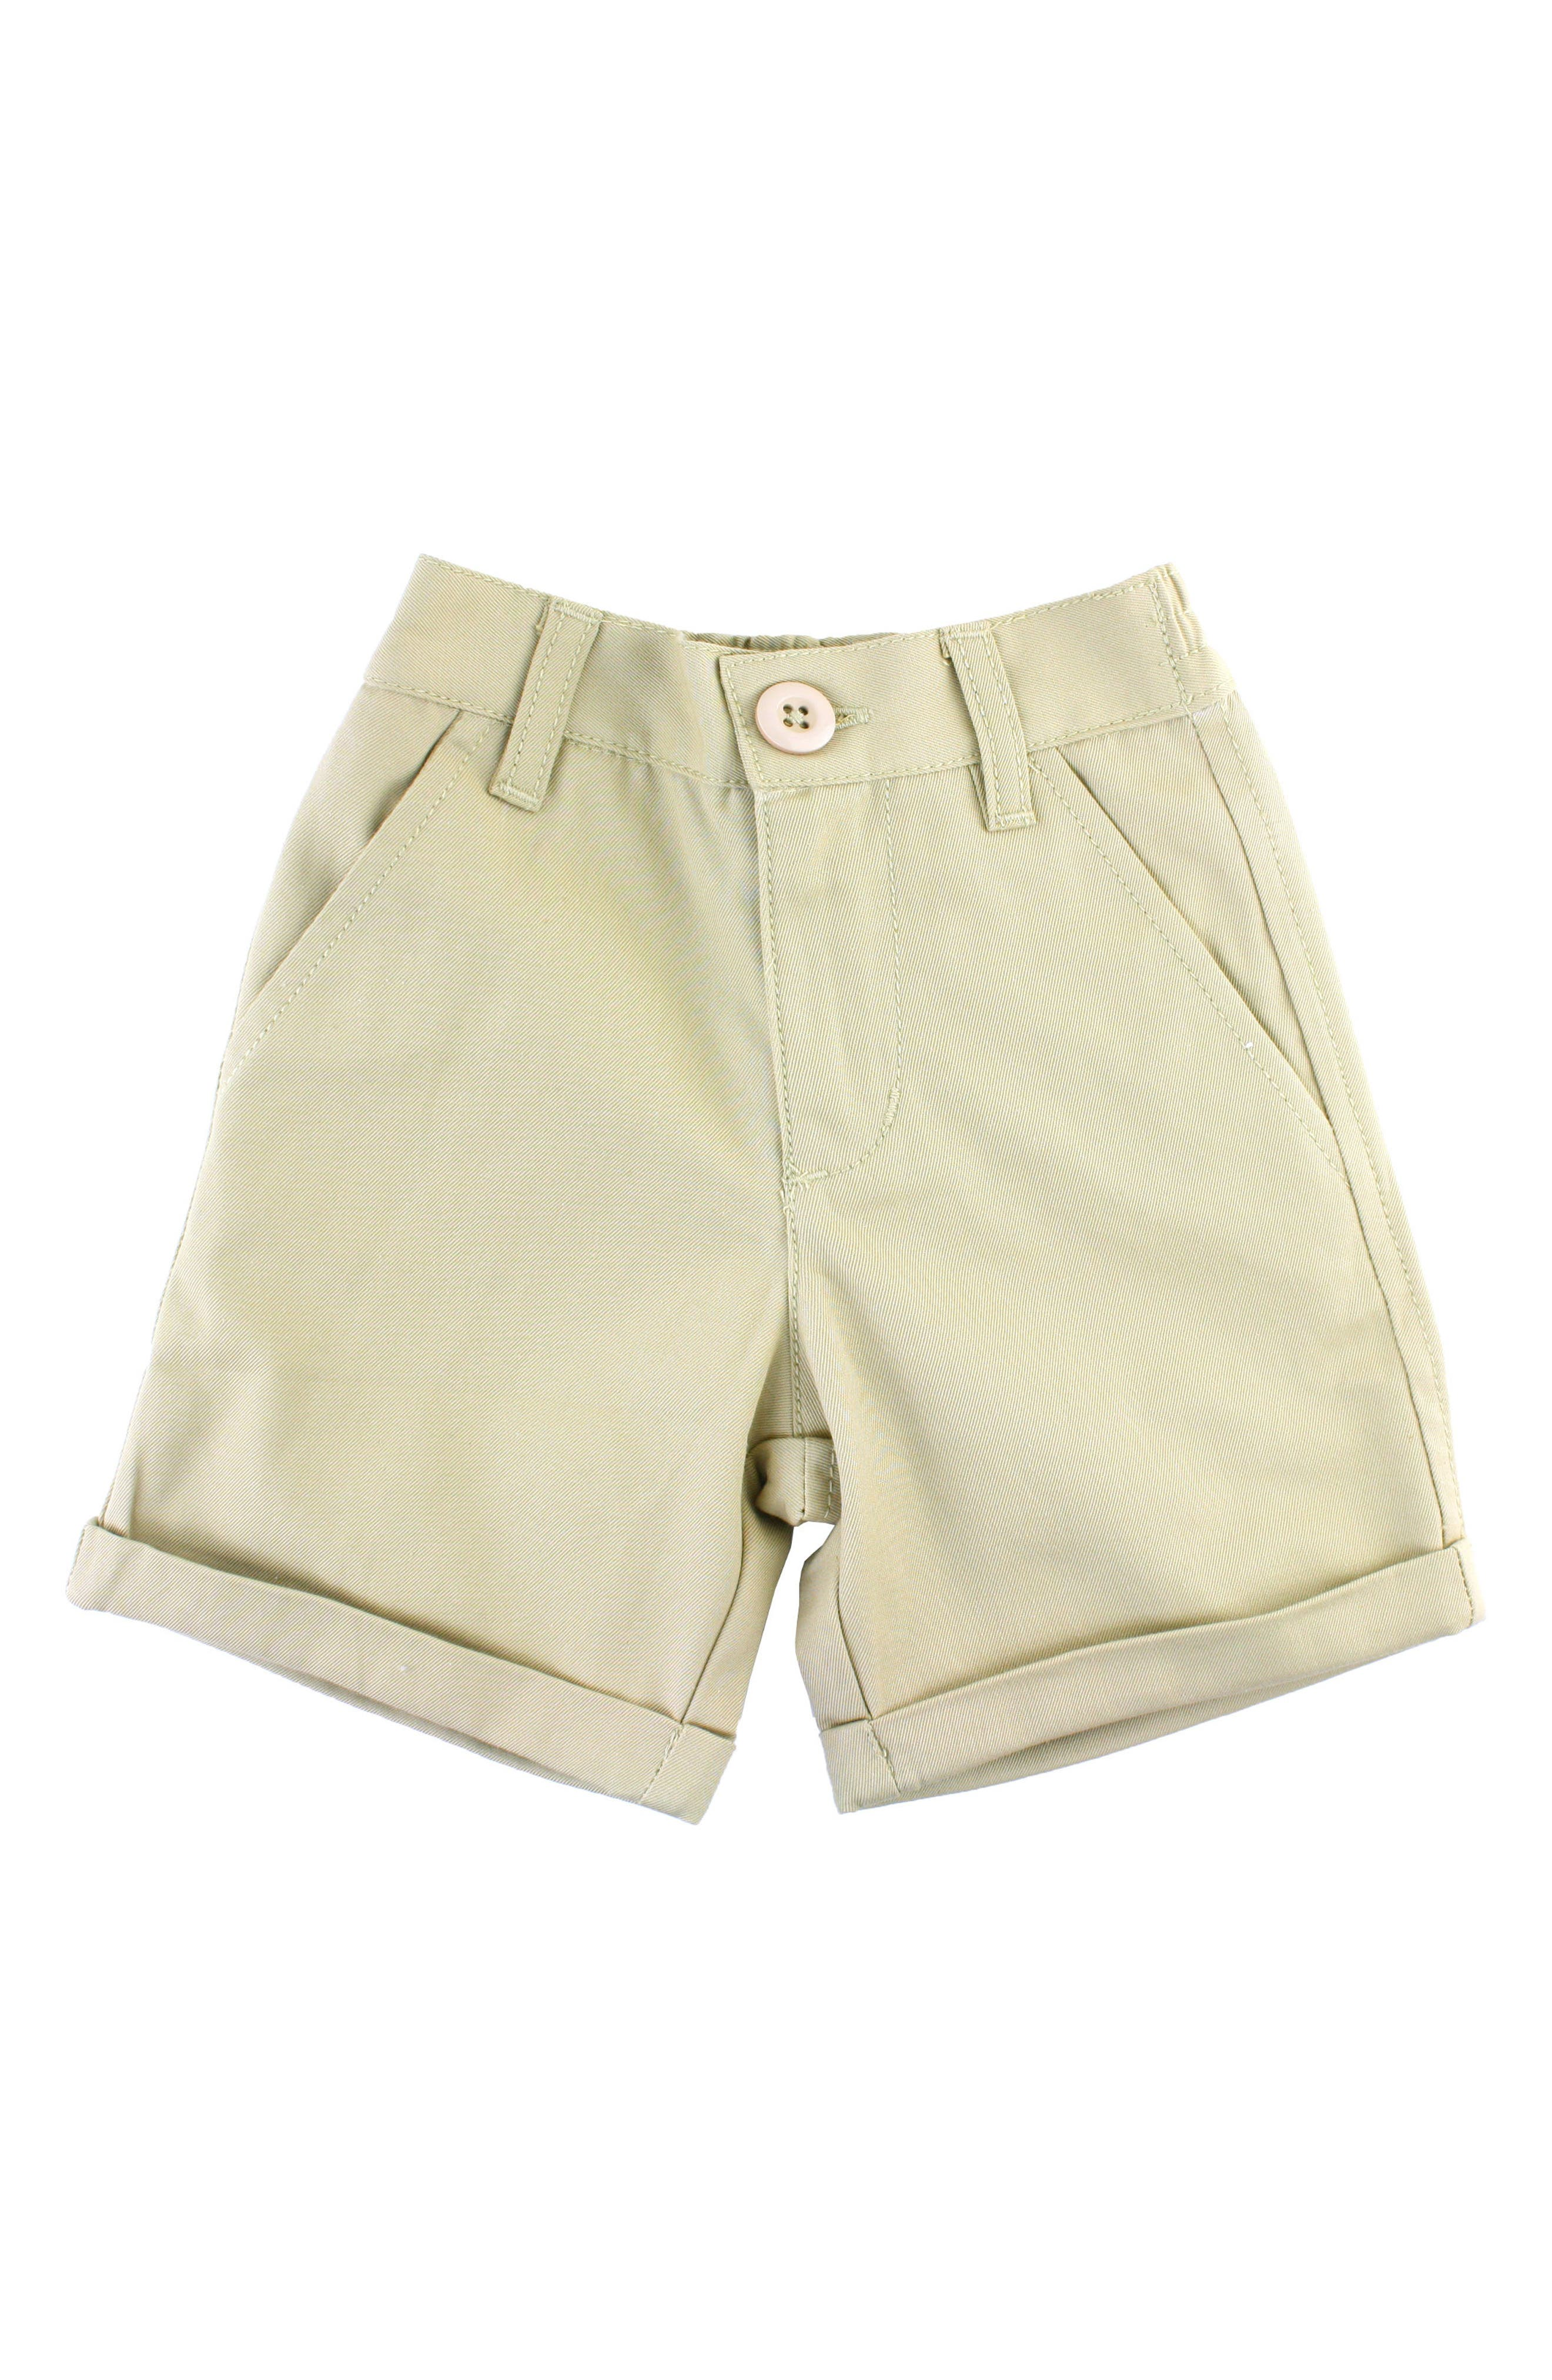 Chino Shorts,                         Main,                         color, 250